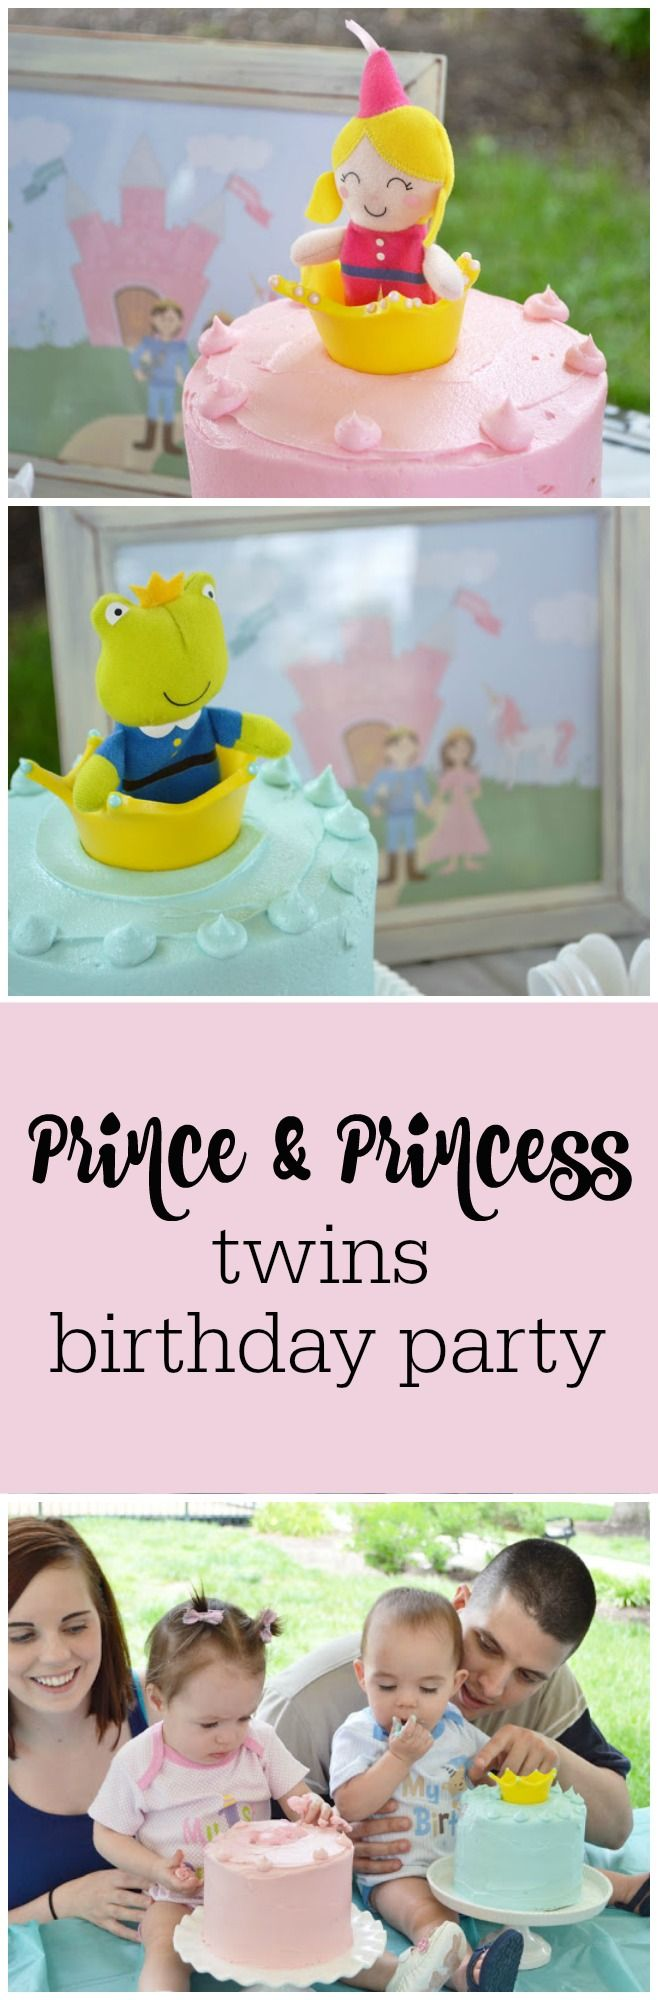 Prince and princess first birthday party for twins by Sunny by Design featured on The Party Teacher | http://thepartyteacher.com/2013/07/16/guest-party-boy-girl-twins-first-birthday-party/